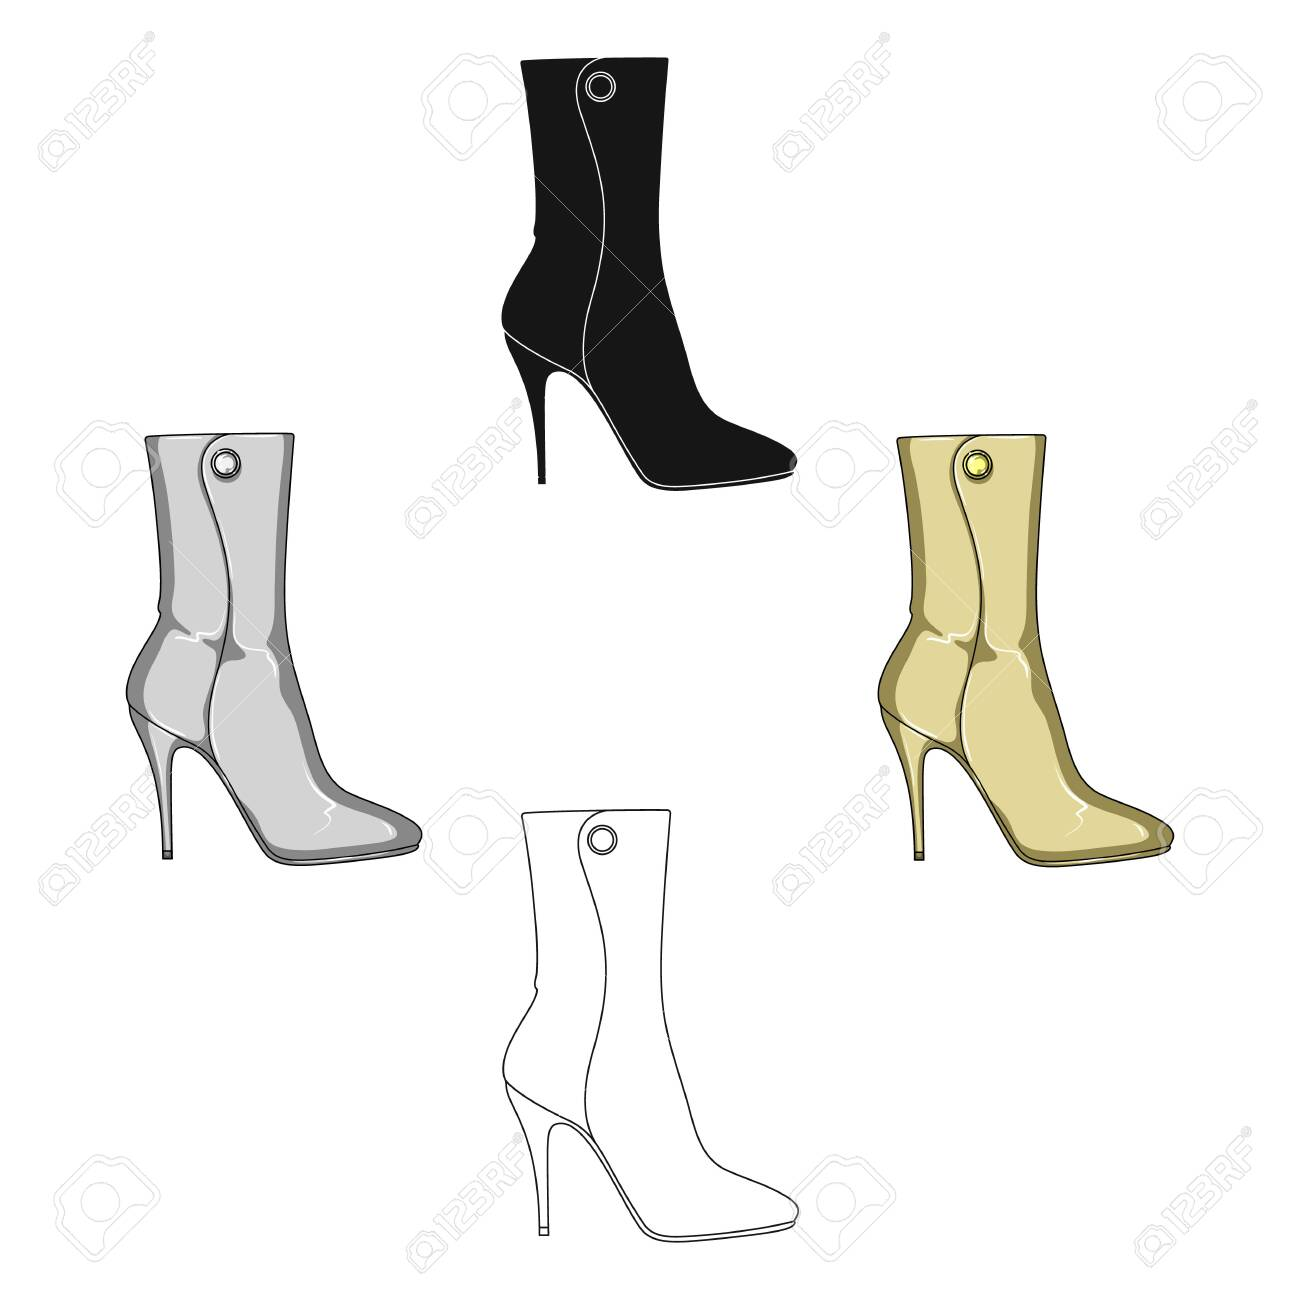 111bf5ce6cd Demi tall womens boots high heel.Different shoes single icon in  cartoon,black style